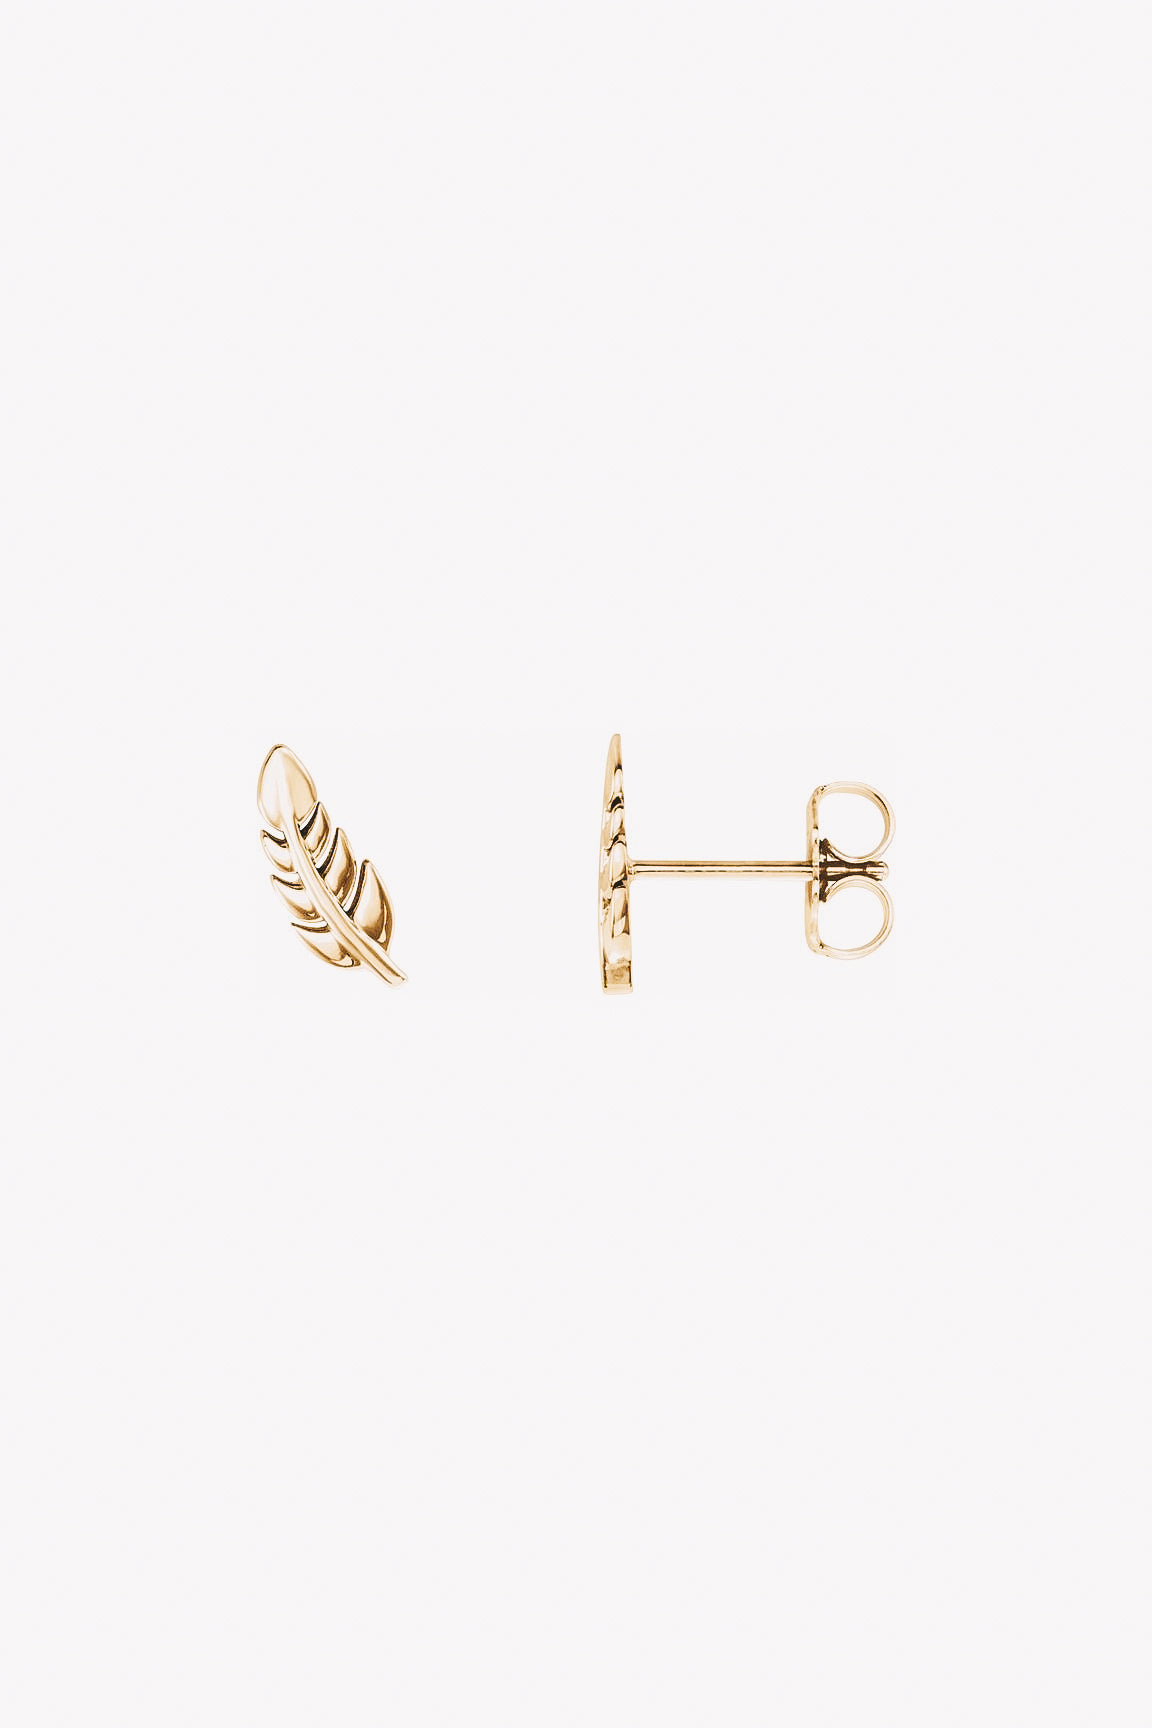 14k gold leaf stud earrings side view